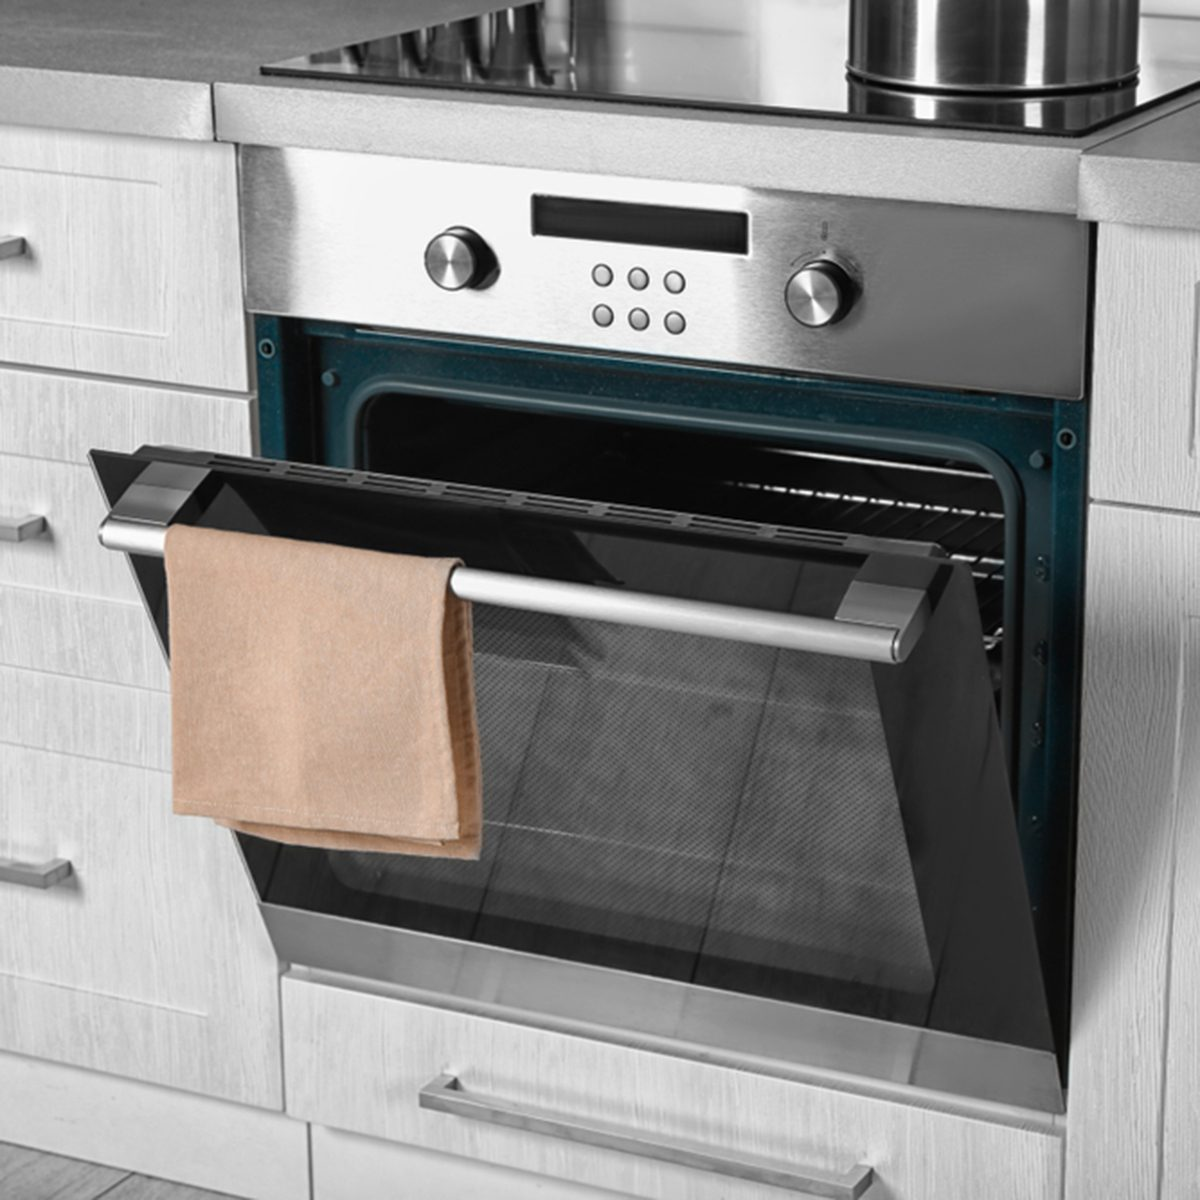 New electric oven in kitchen; Shutterstock ID 790361734